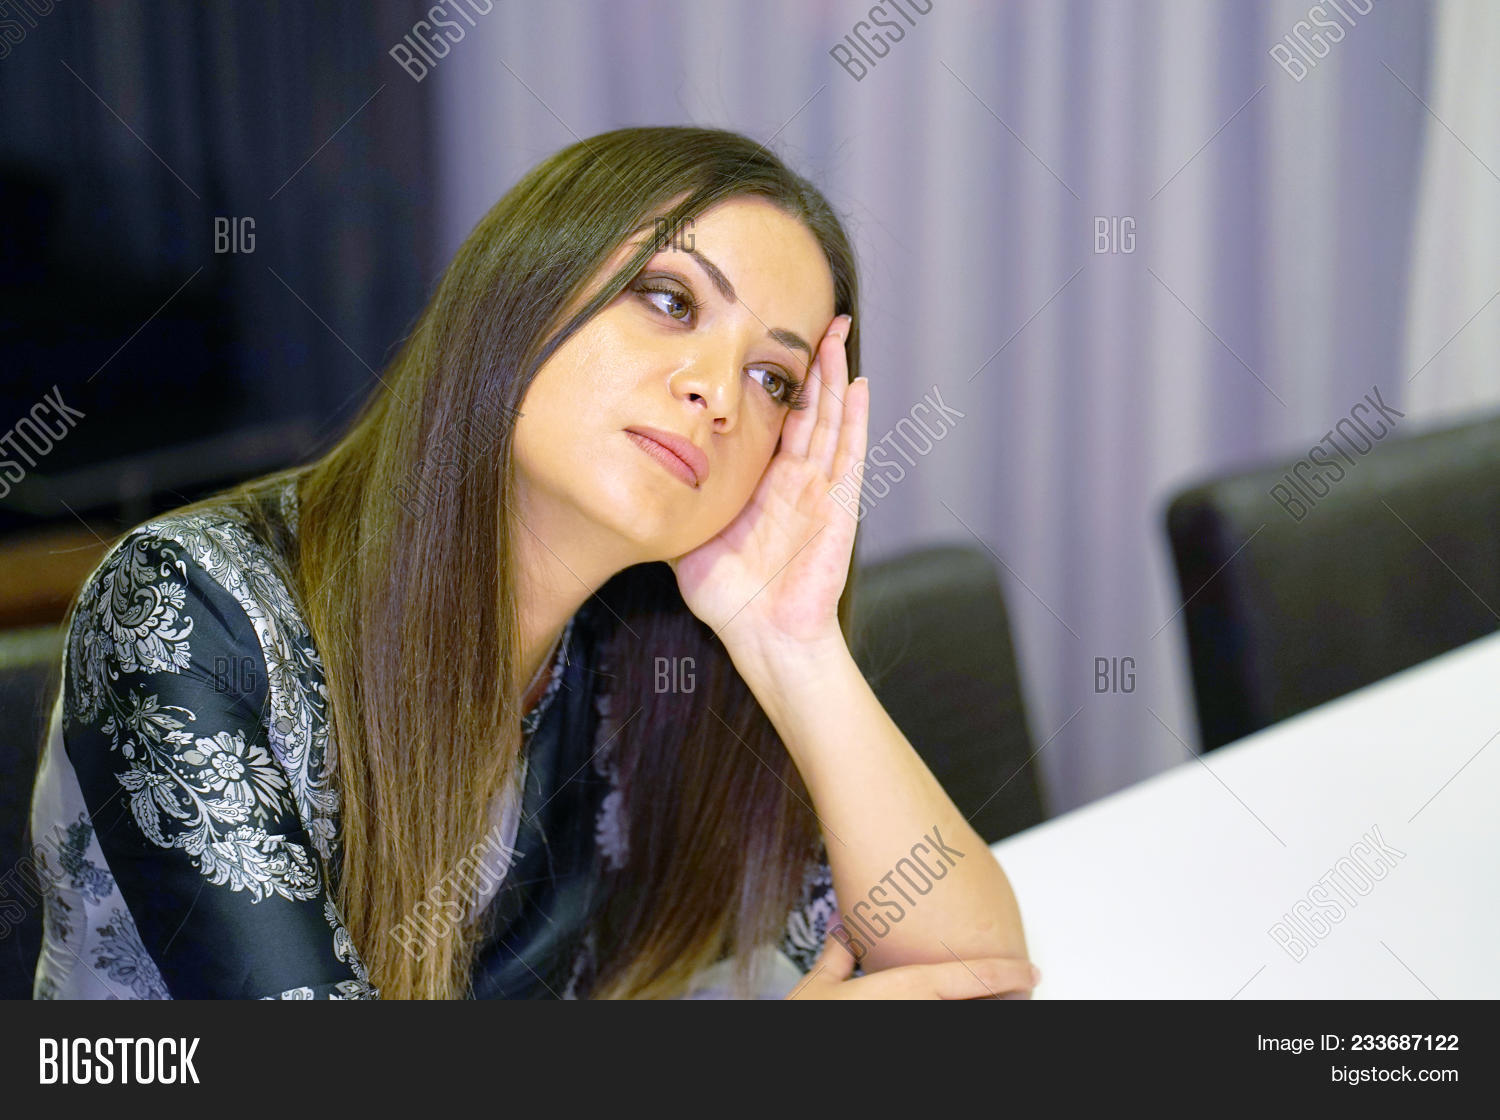 Lonely Young Woman, Image & Photo (Free Trial) | Bigstock